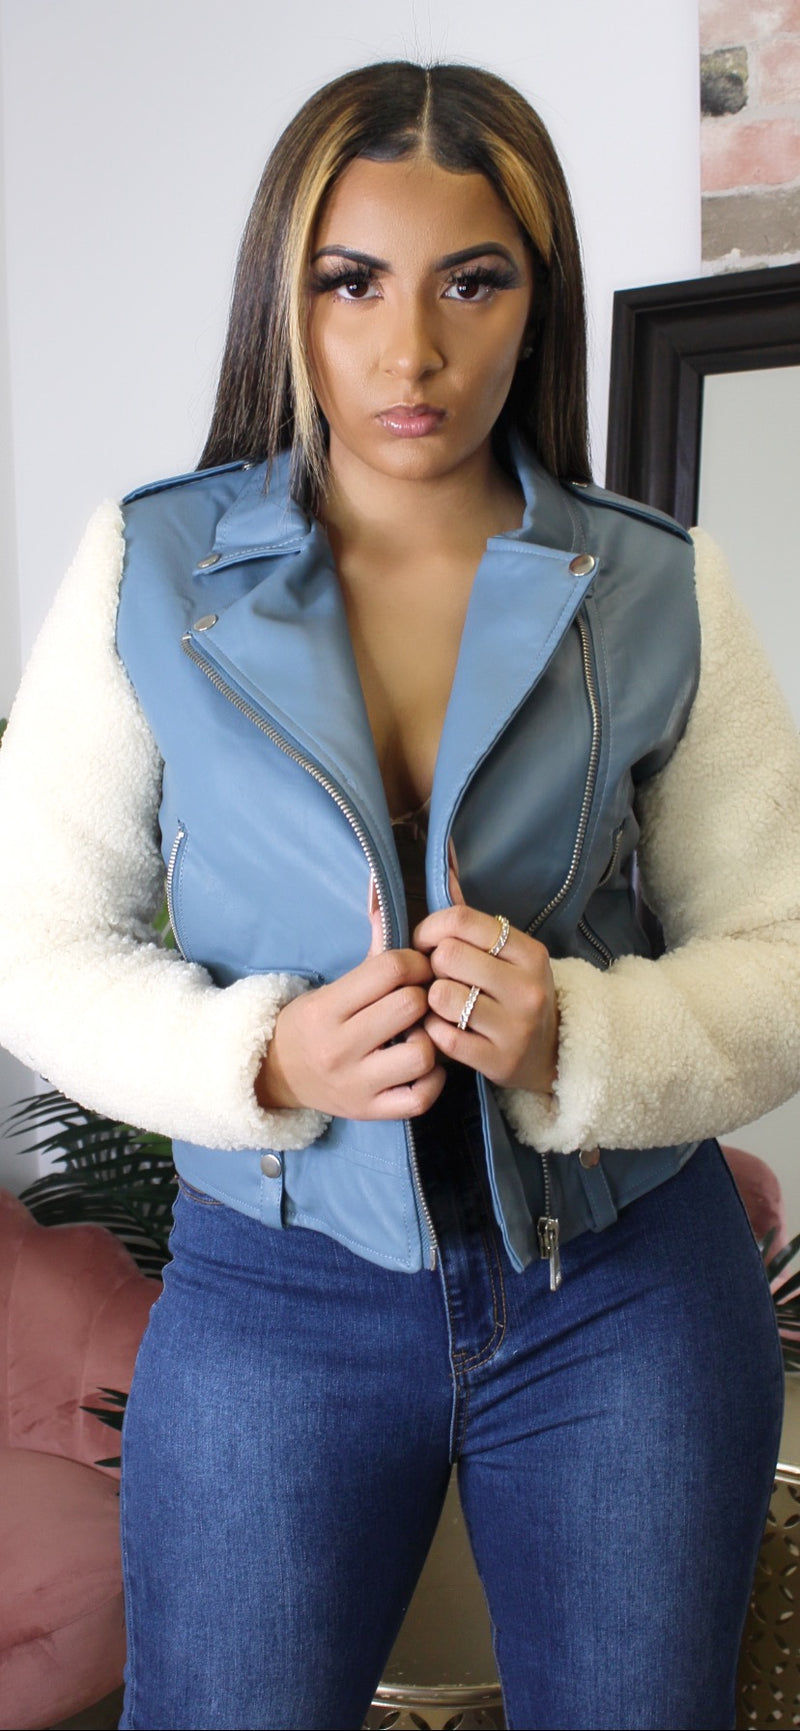 FAUX LEATHER JACKET WITH WOOL SLEEVES - Spice Boutique